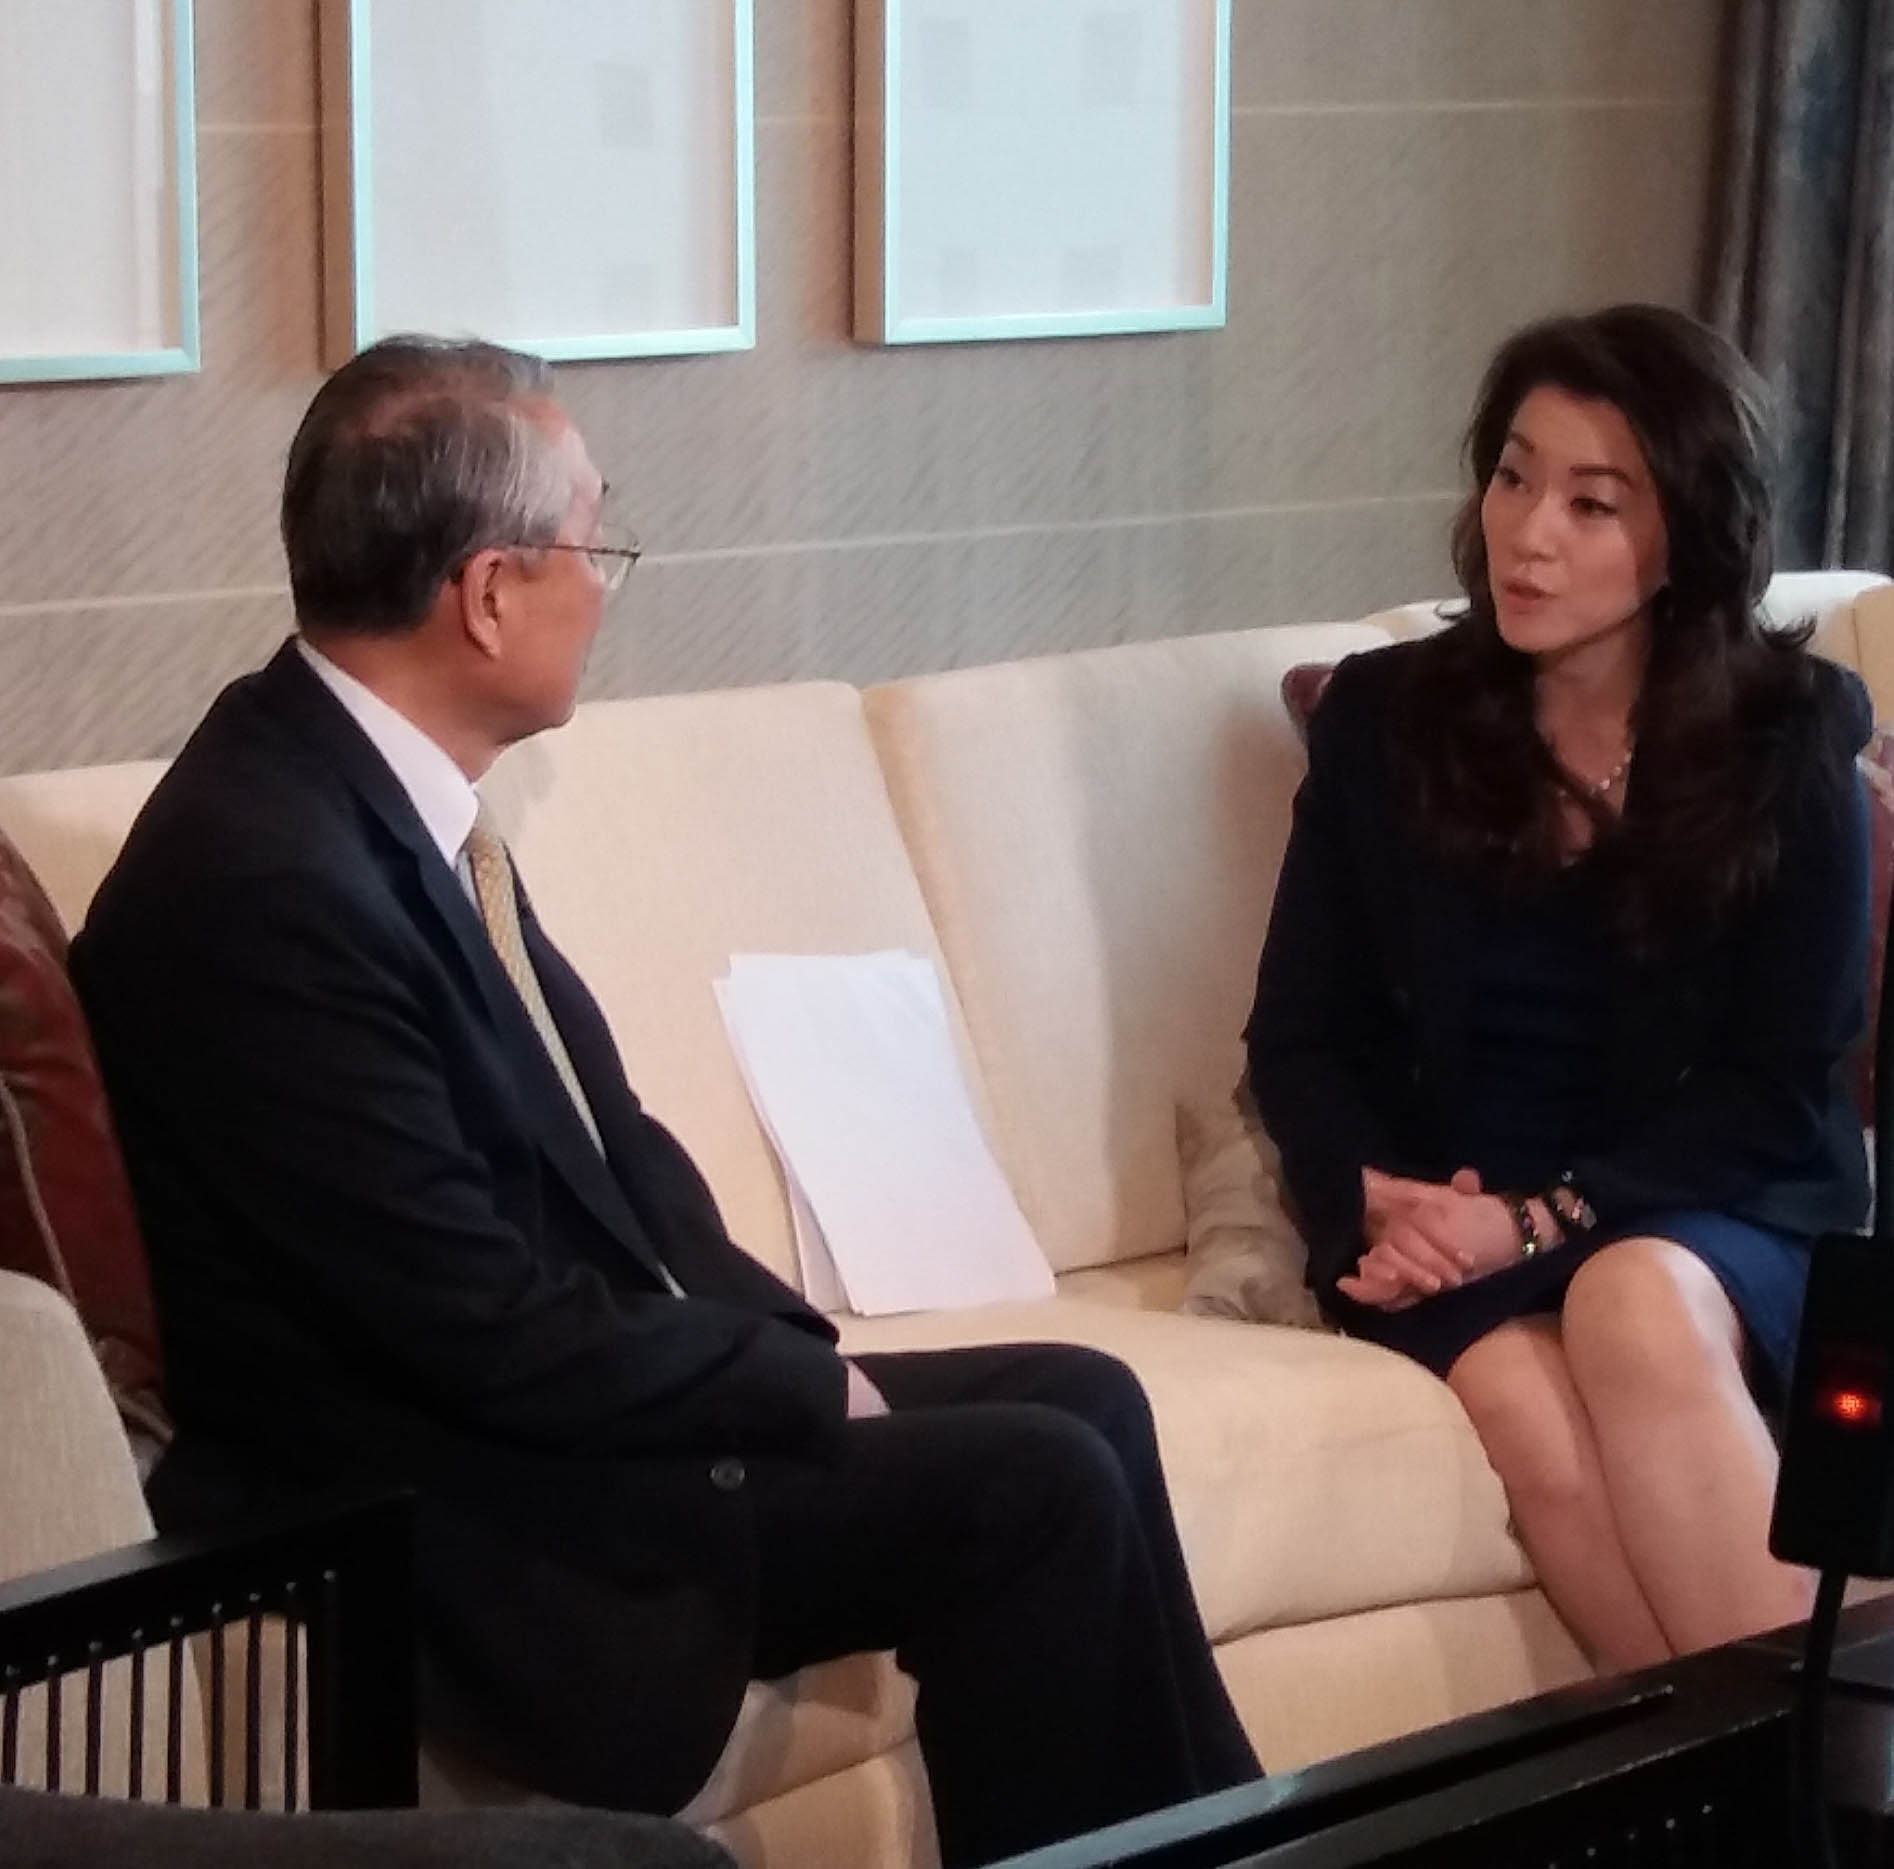 Stan Shih, Acer Founder and Honorary Chairman, with Cathy Yang host of ANC's The Boss